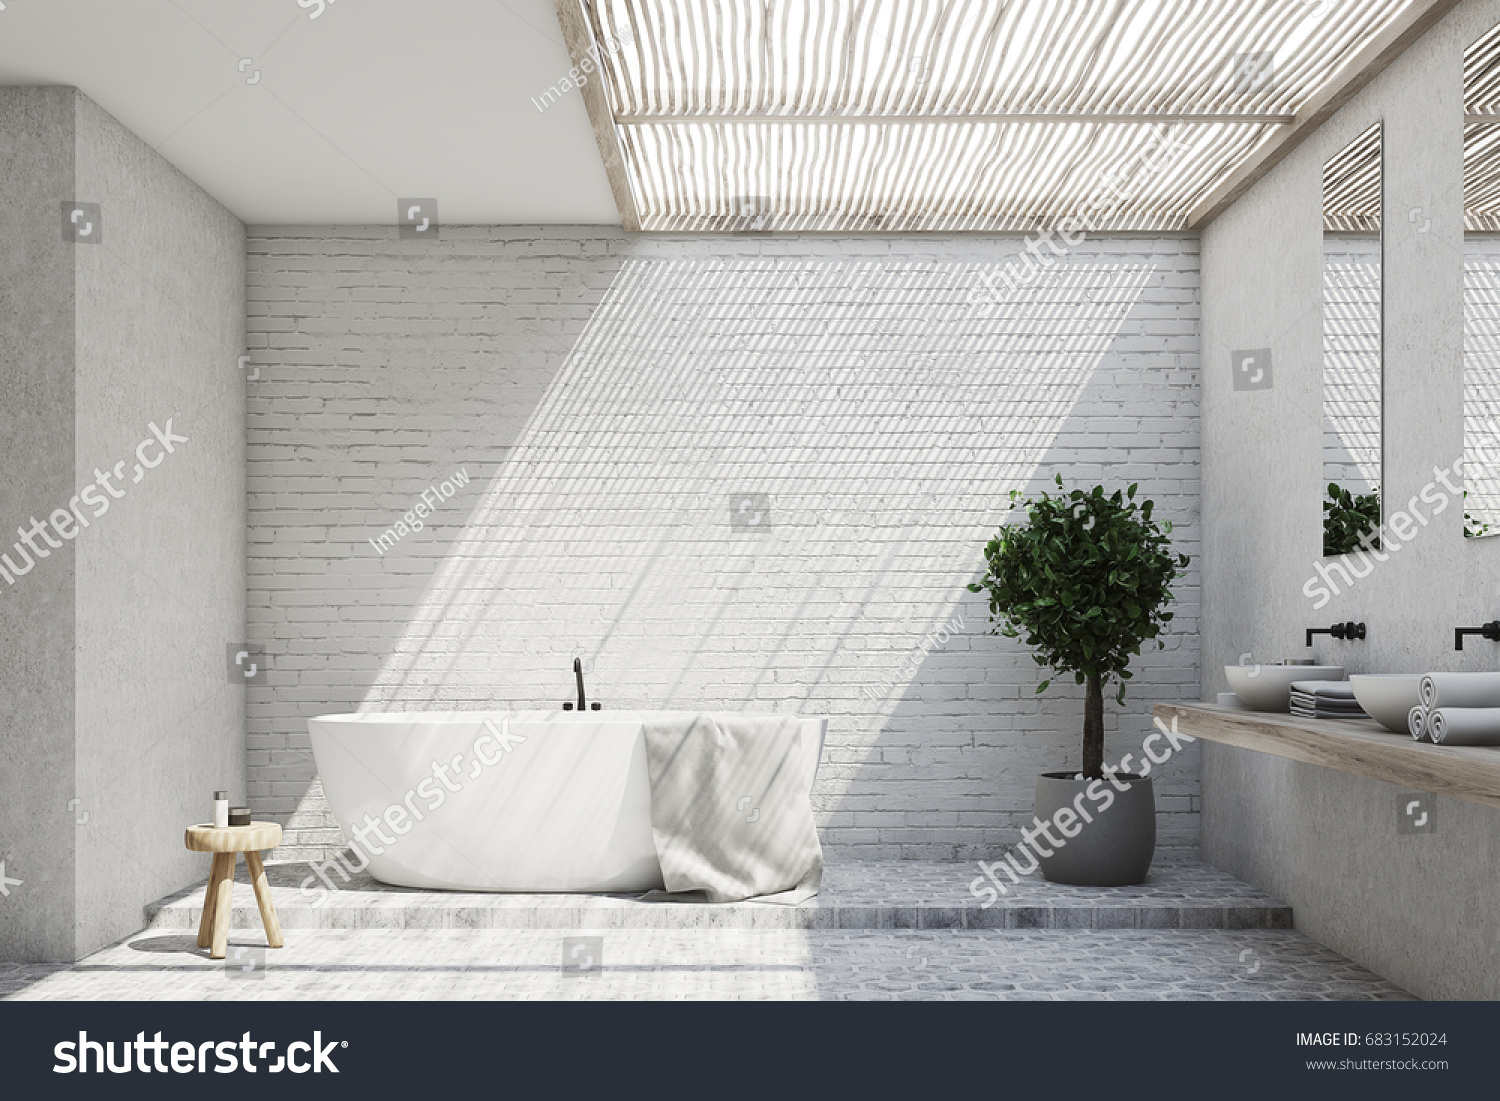 slipper to addition and double ends short this sloping eye genoa catching any plinth modern home acrylic shape distinct gently on a l make bathroom tub an bathtub